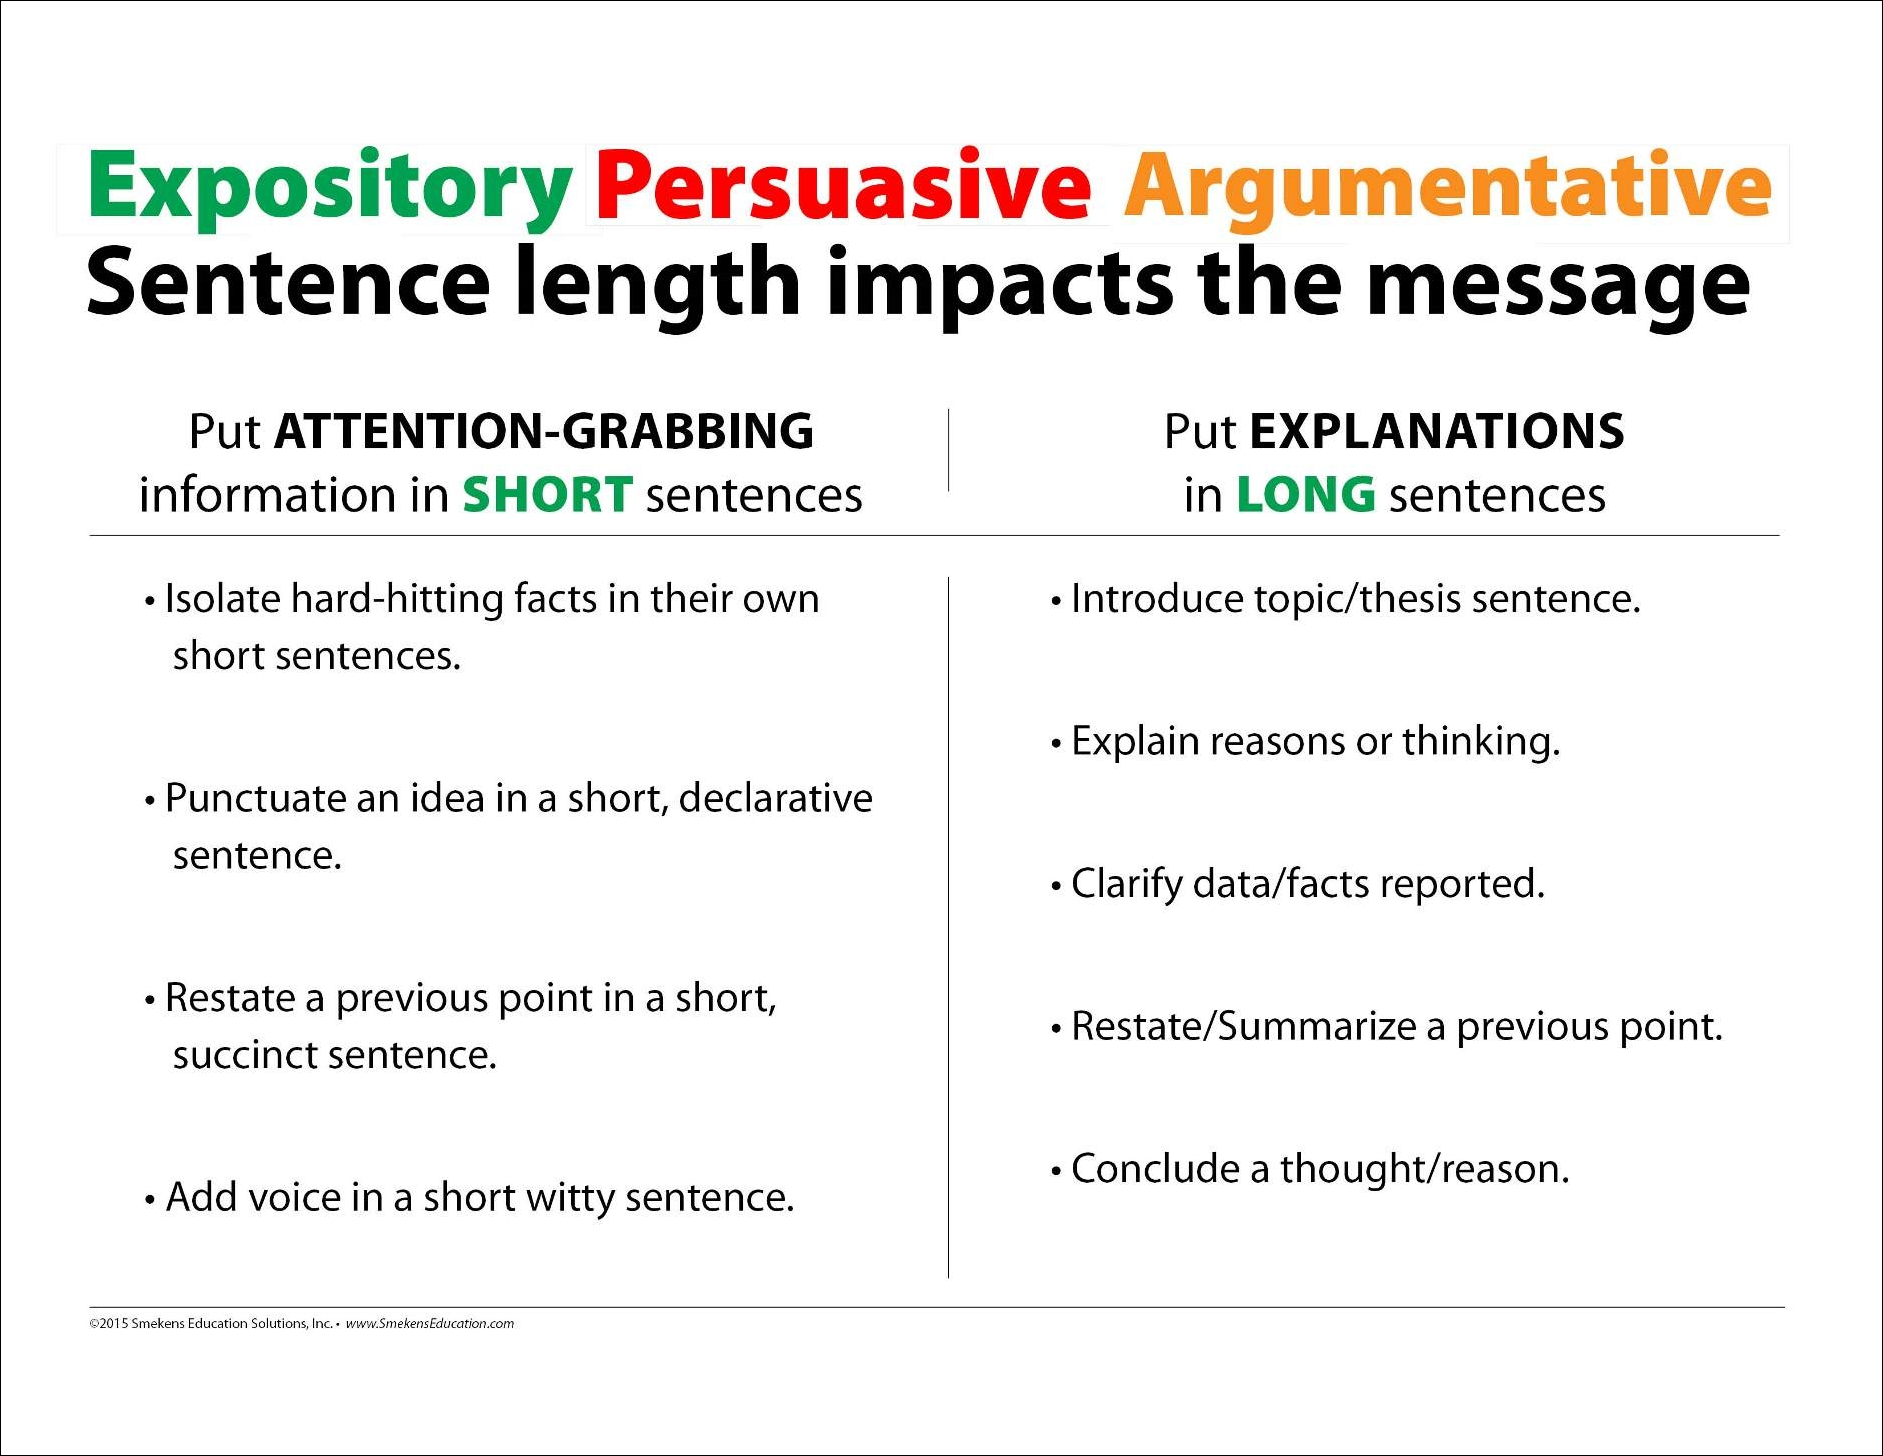 Expository-Persuasive-Argumentative Reasons for Sentence Length